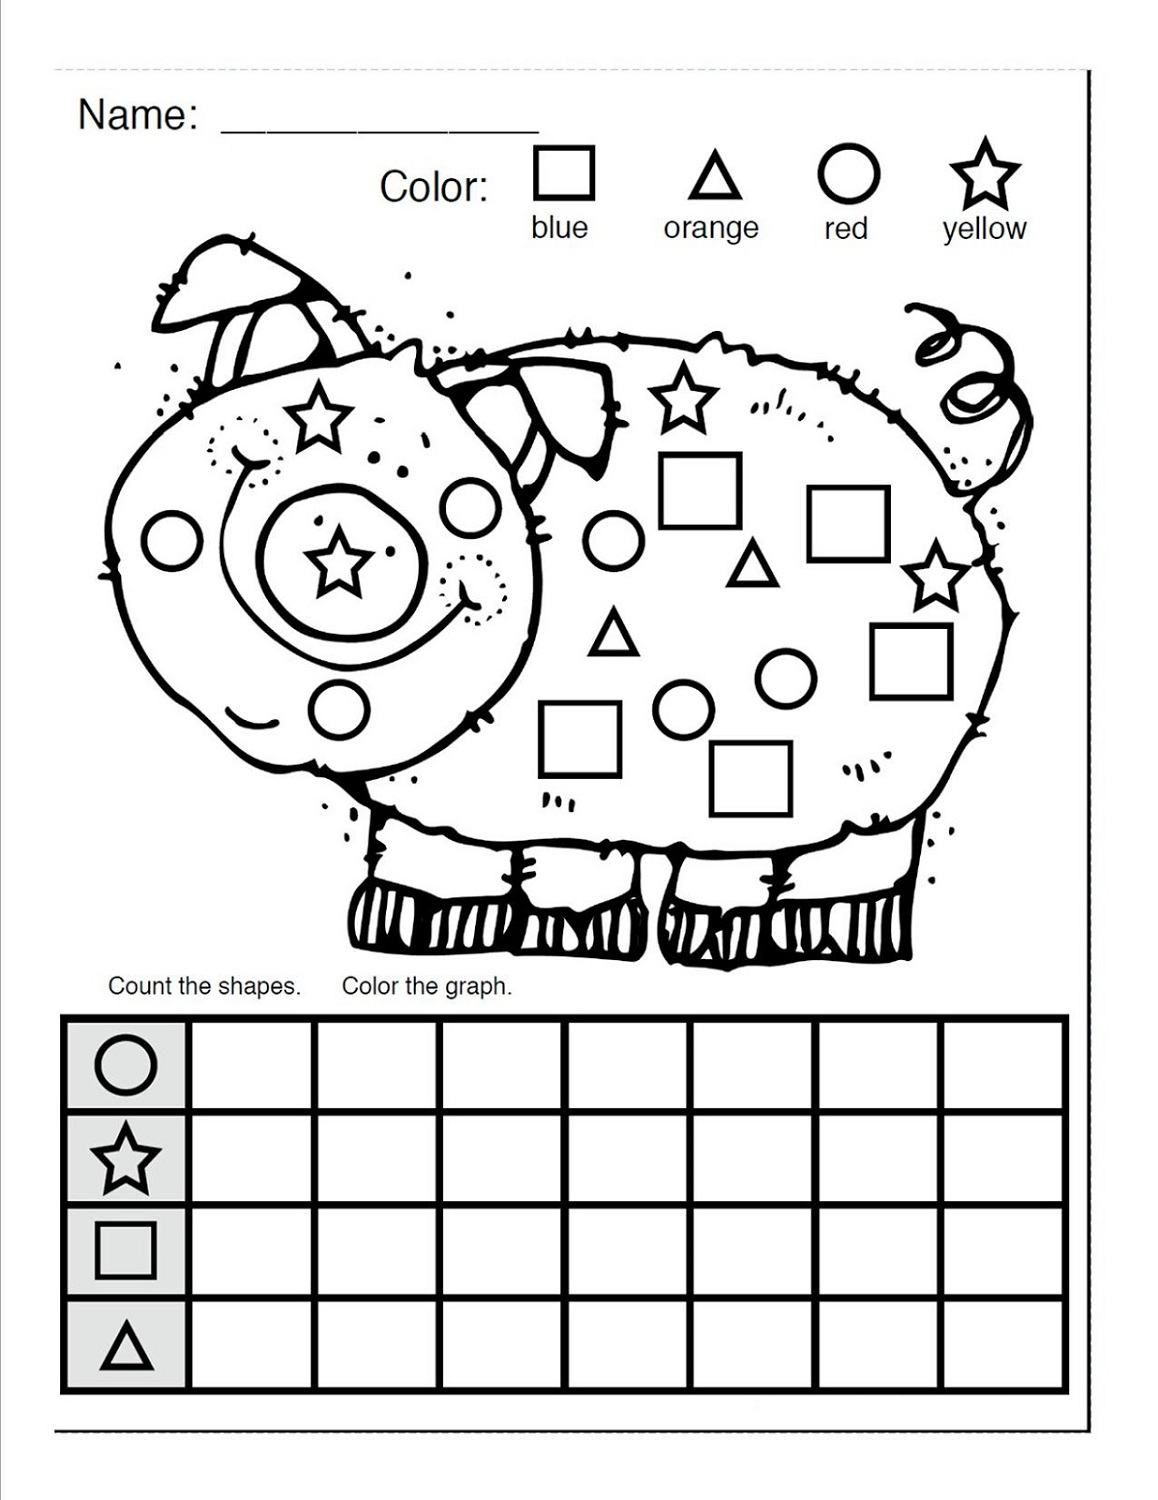 color the shape worksheets activity shelter. Black Bedroom Furniture Sets. Home Design Ideas